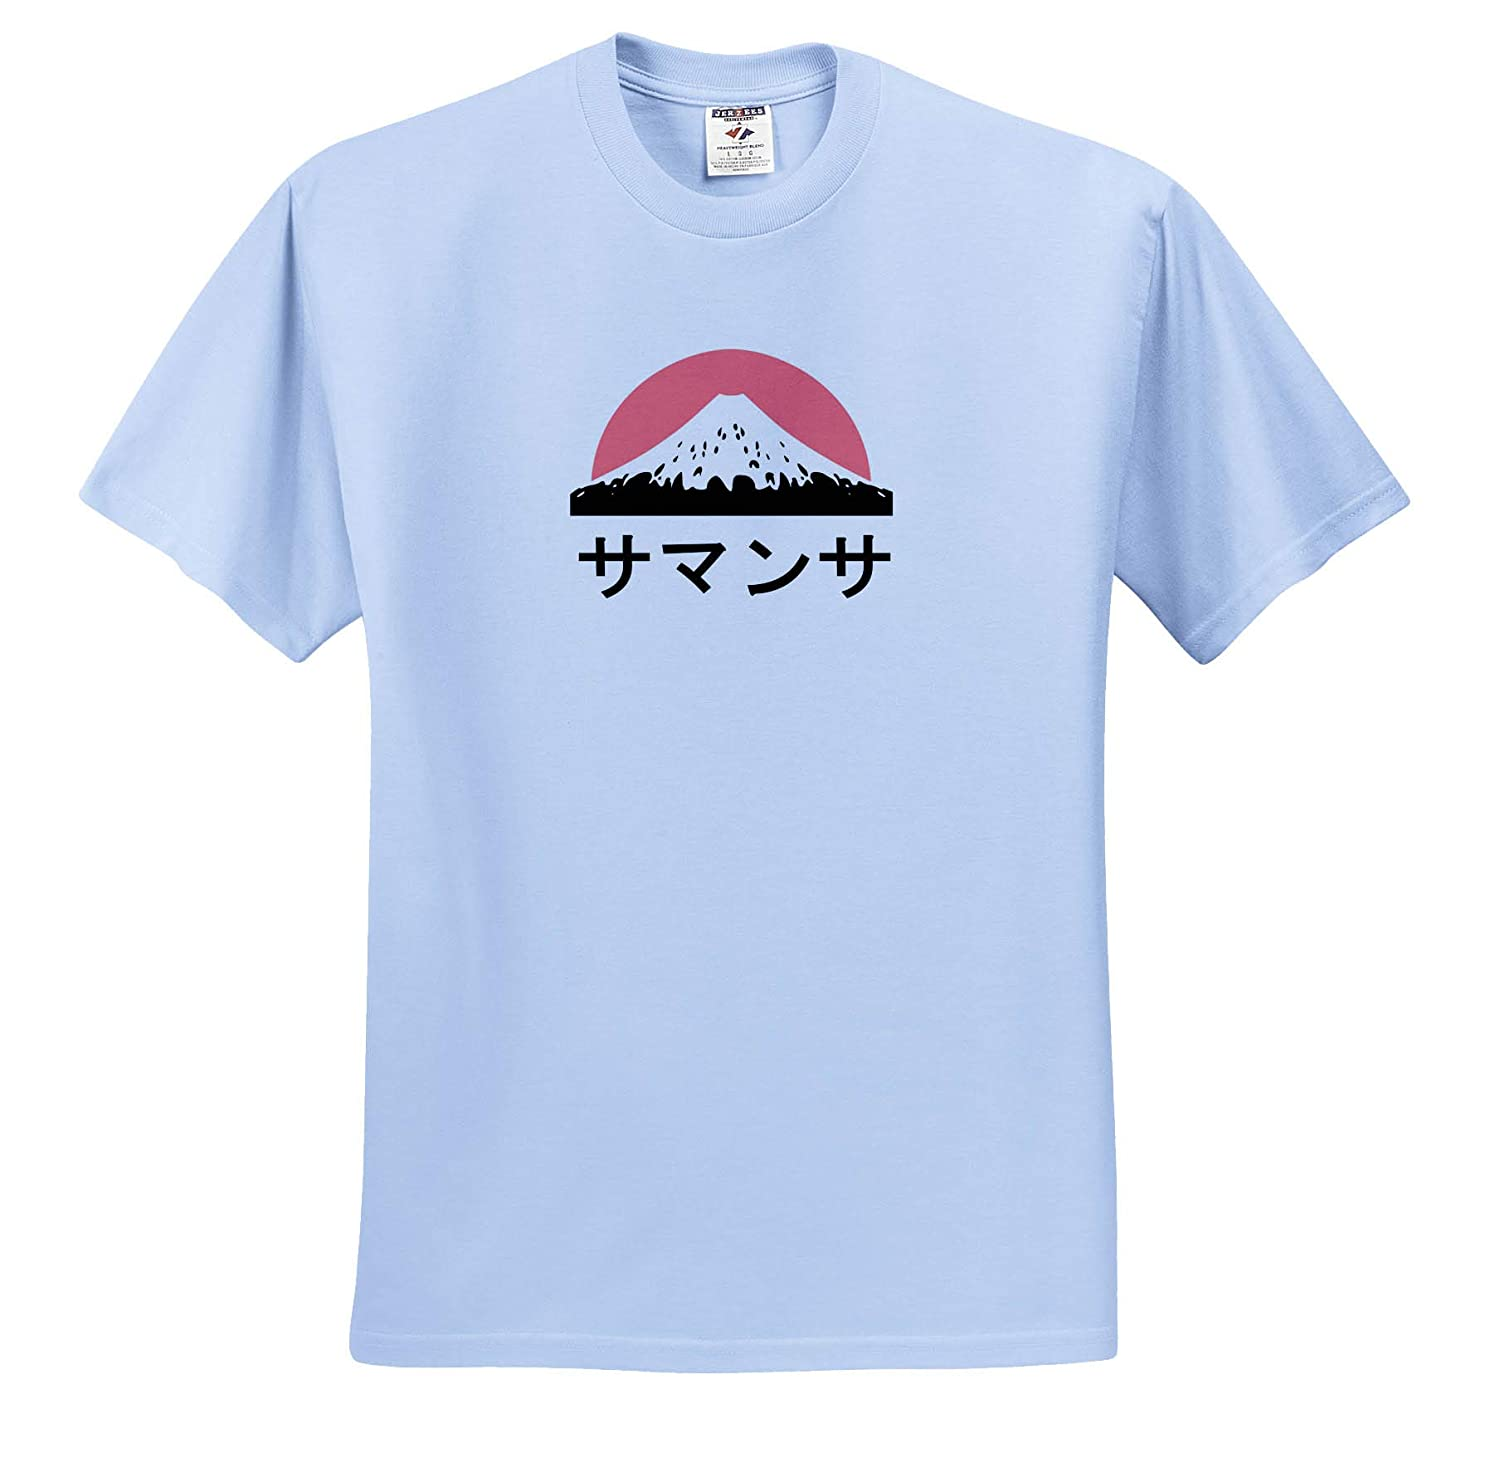 Adult T-Shirt XL Samantha in Japanese Letters ts/_320615 3dRose InspirationzStore Name in Japanese